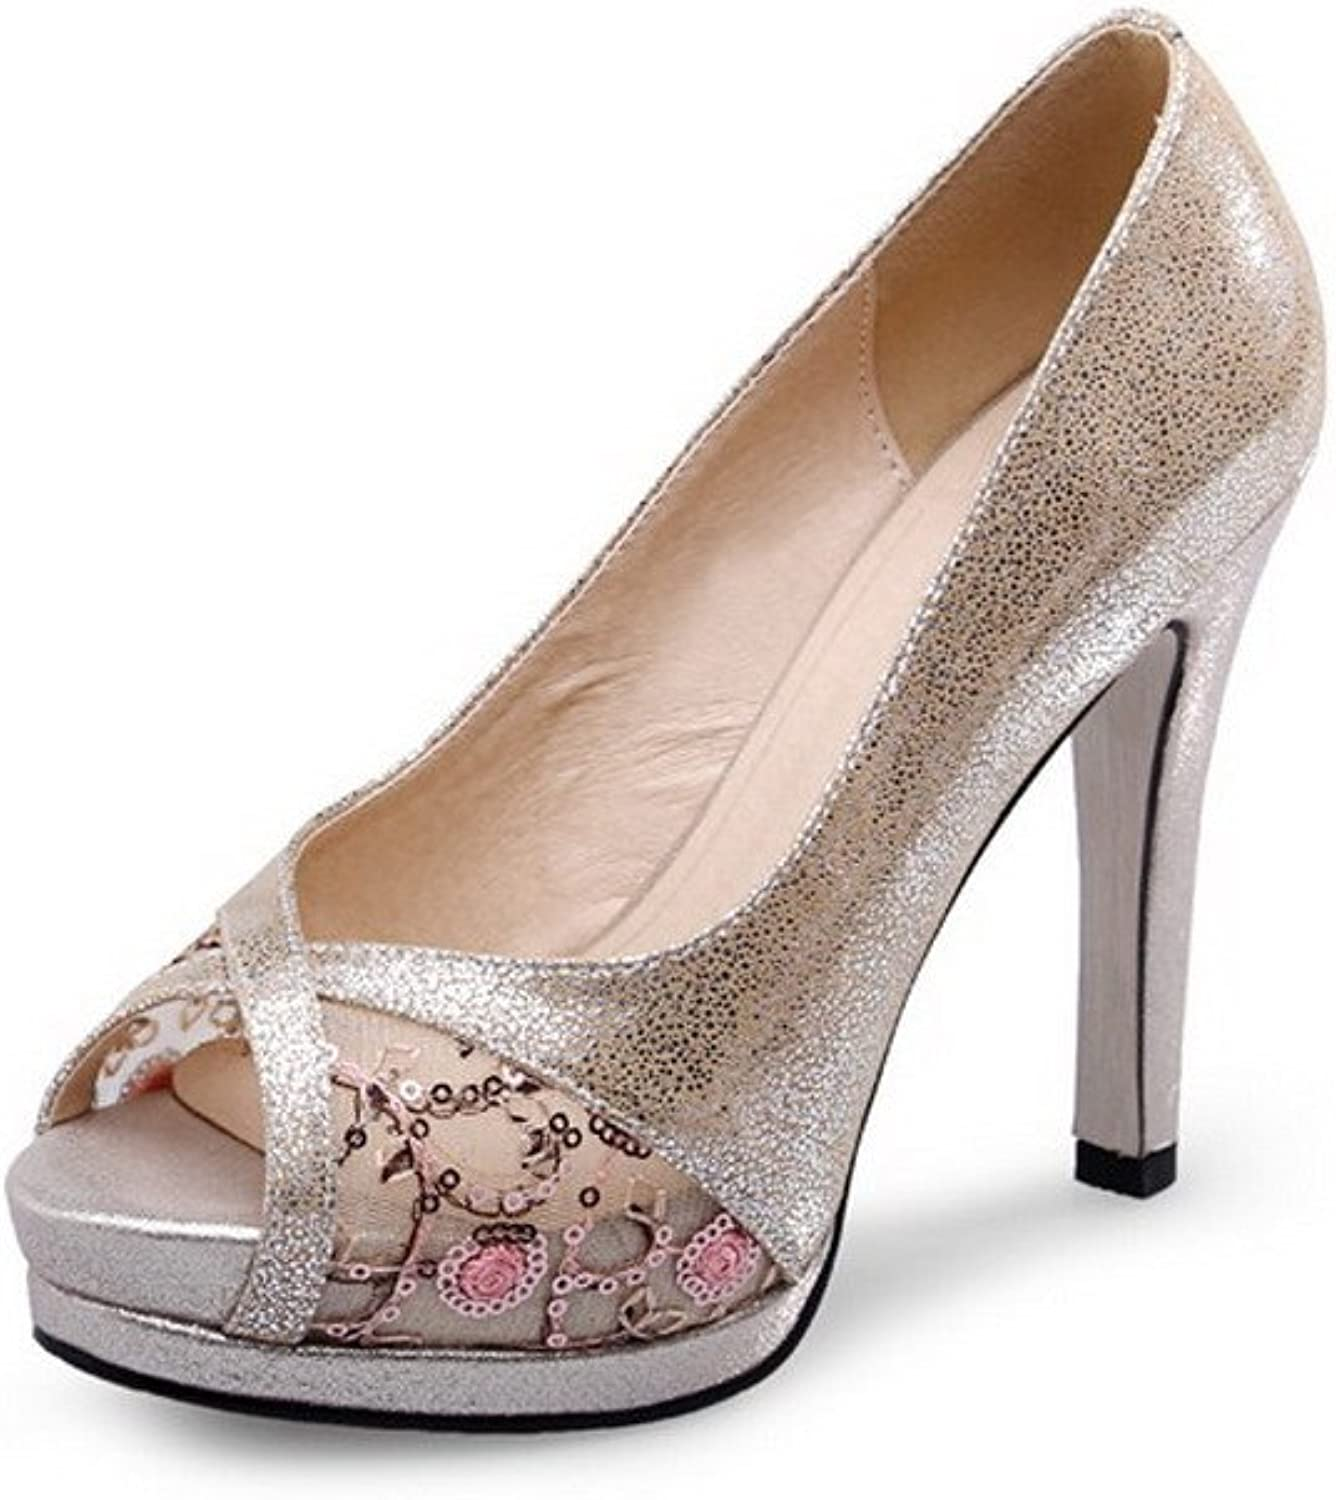 AmoonyFashion Women's Solid Blend Materials High Heels Peep Toe Pull On Sandals